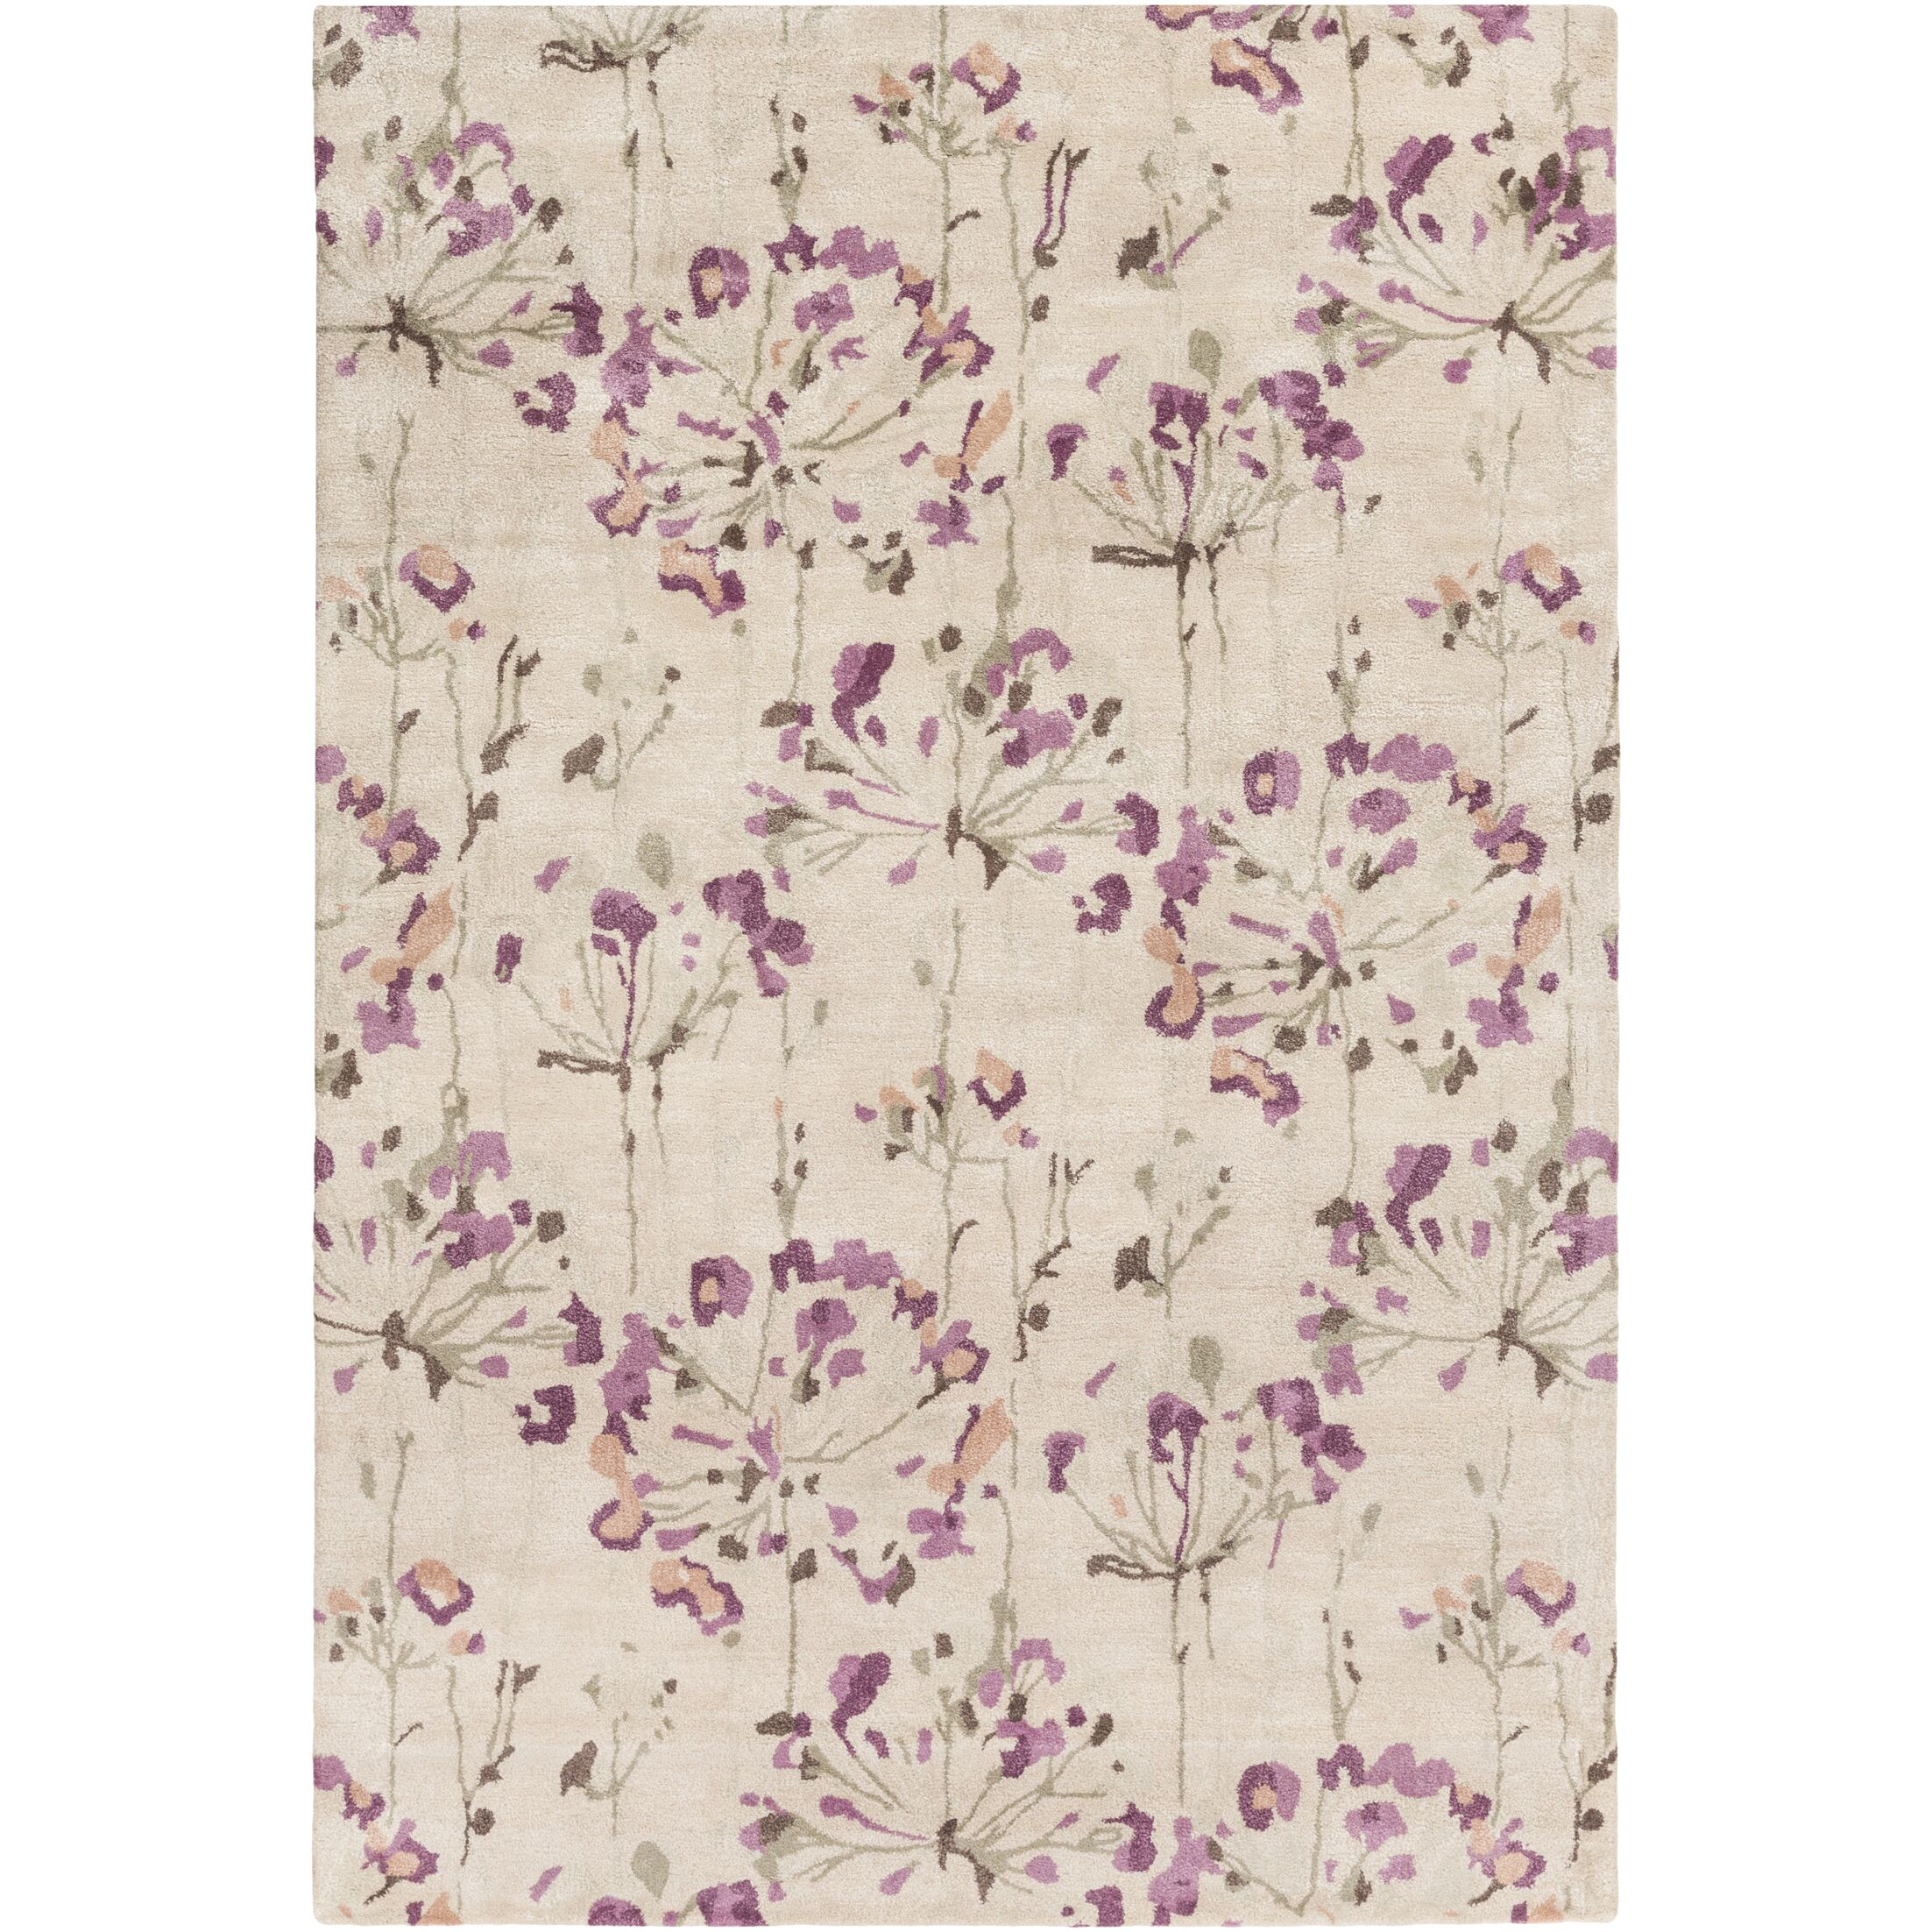 Walshville Hand-Tufted Floral and paisley Area Rug Rug Size: Rectangle 8' x 11'